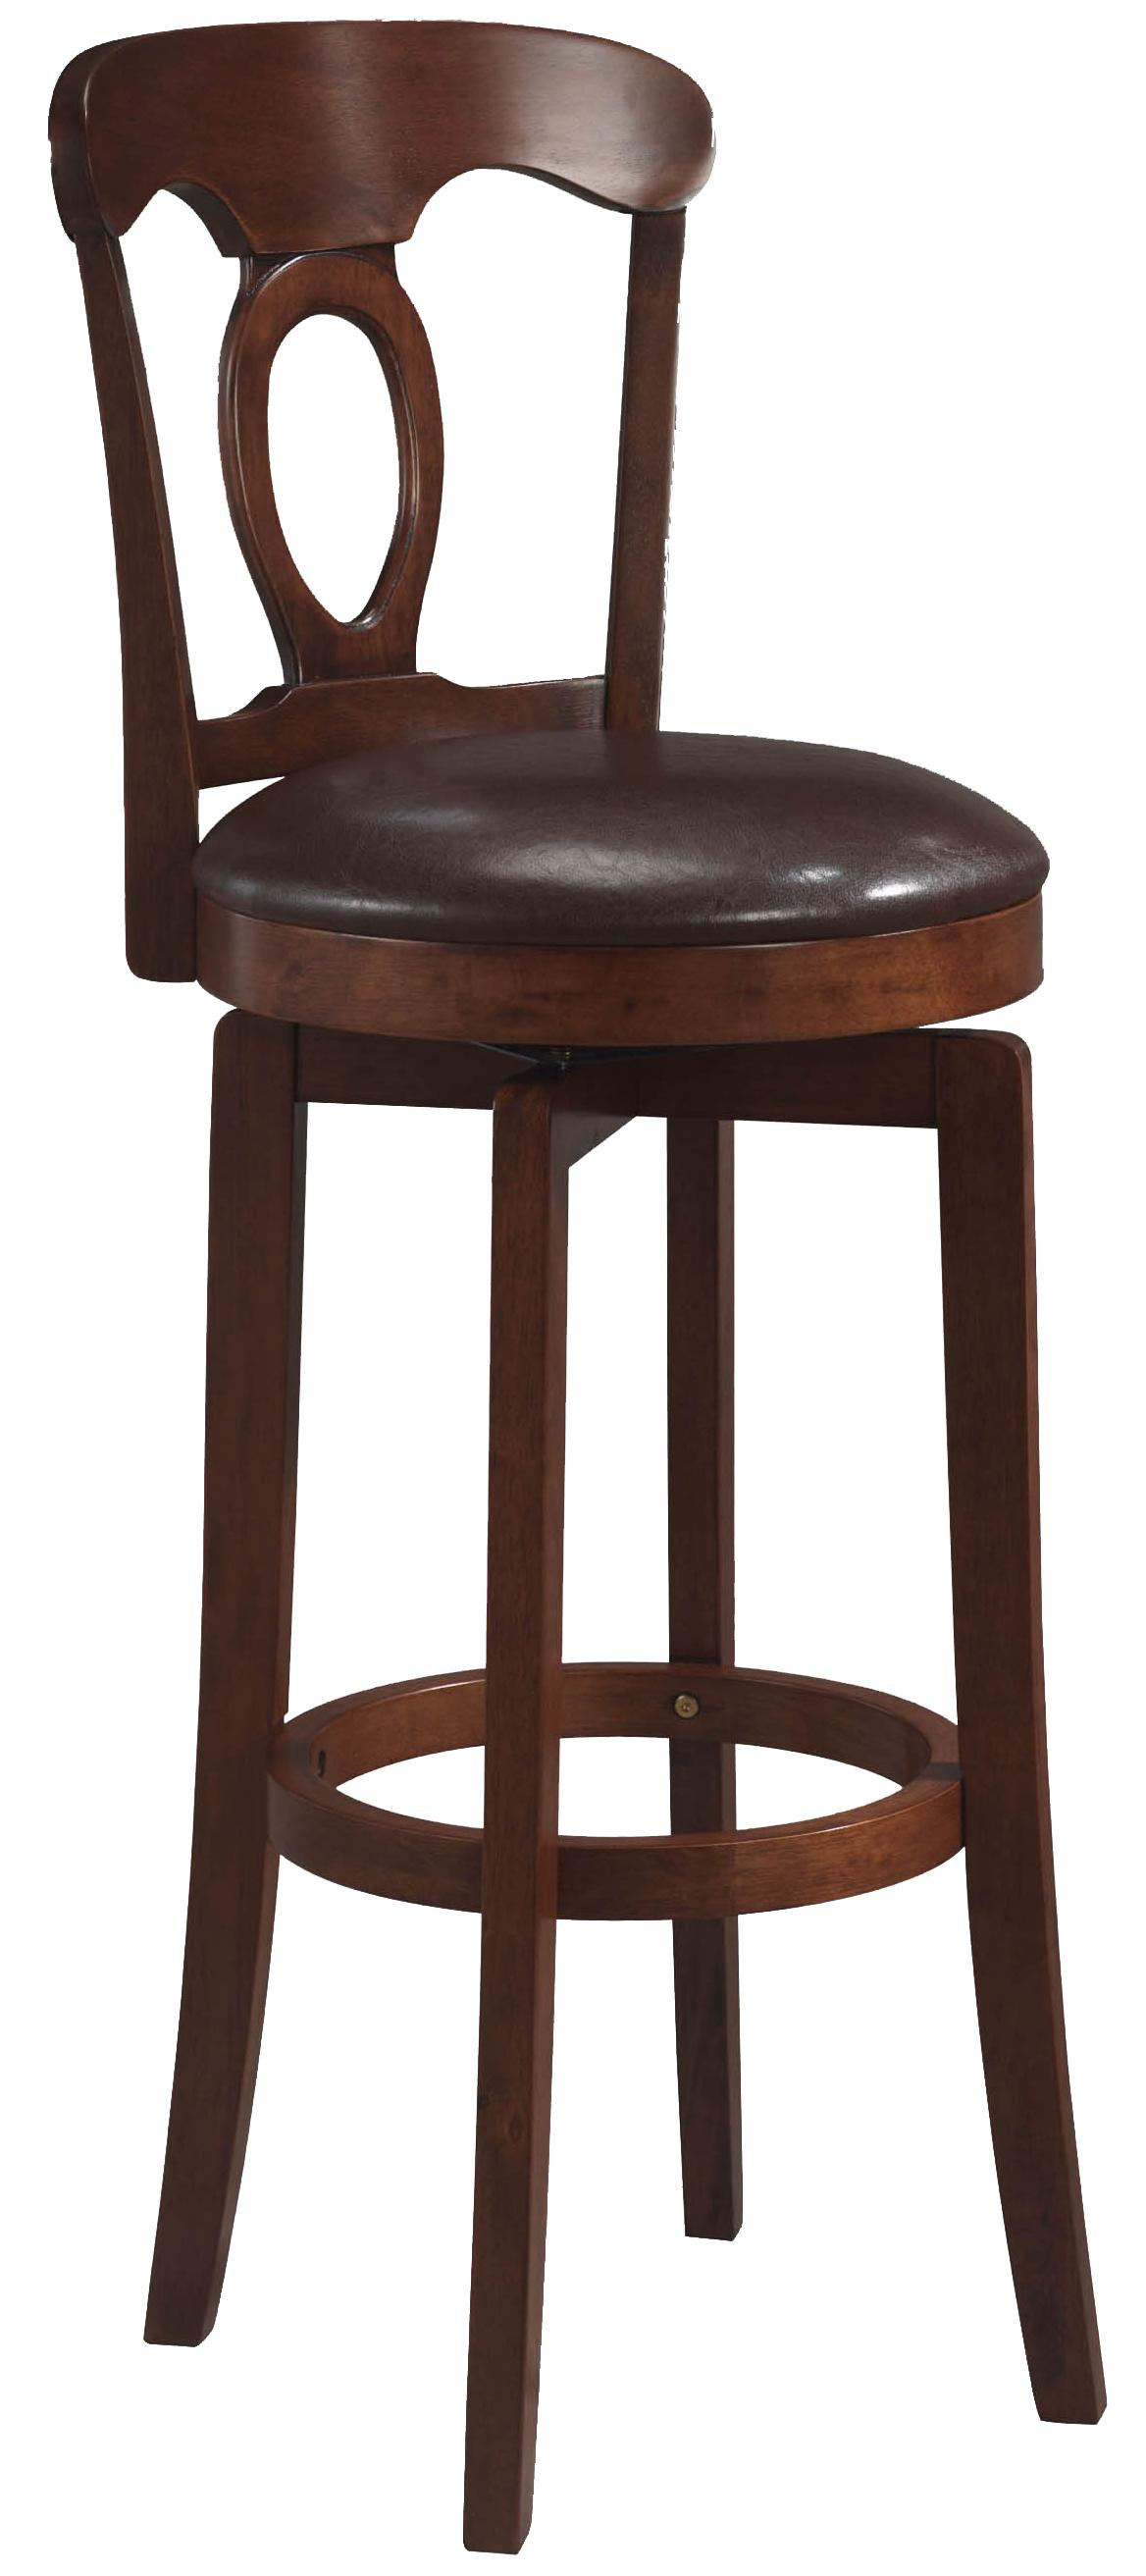 "Hillsdale Wood Stools 30"" Bar Height Brown Corsica Stool  - Item Number: 4166-832"